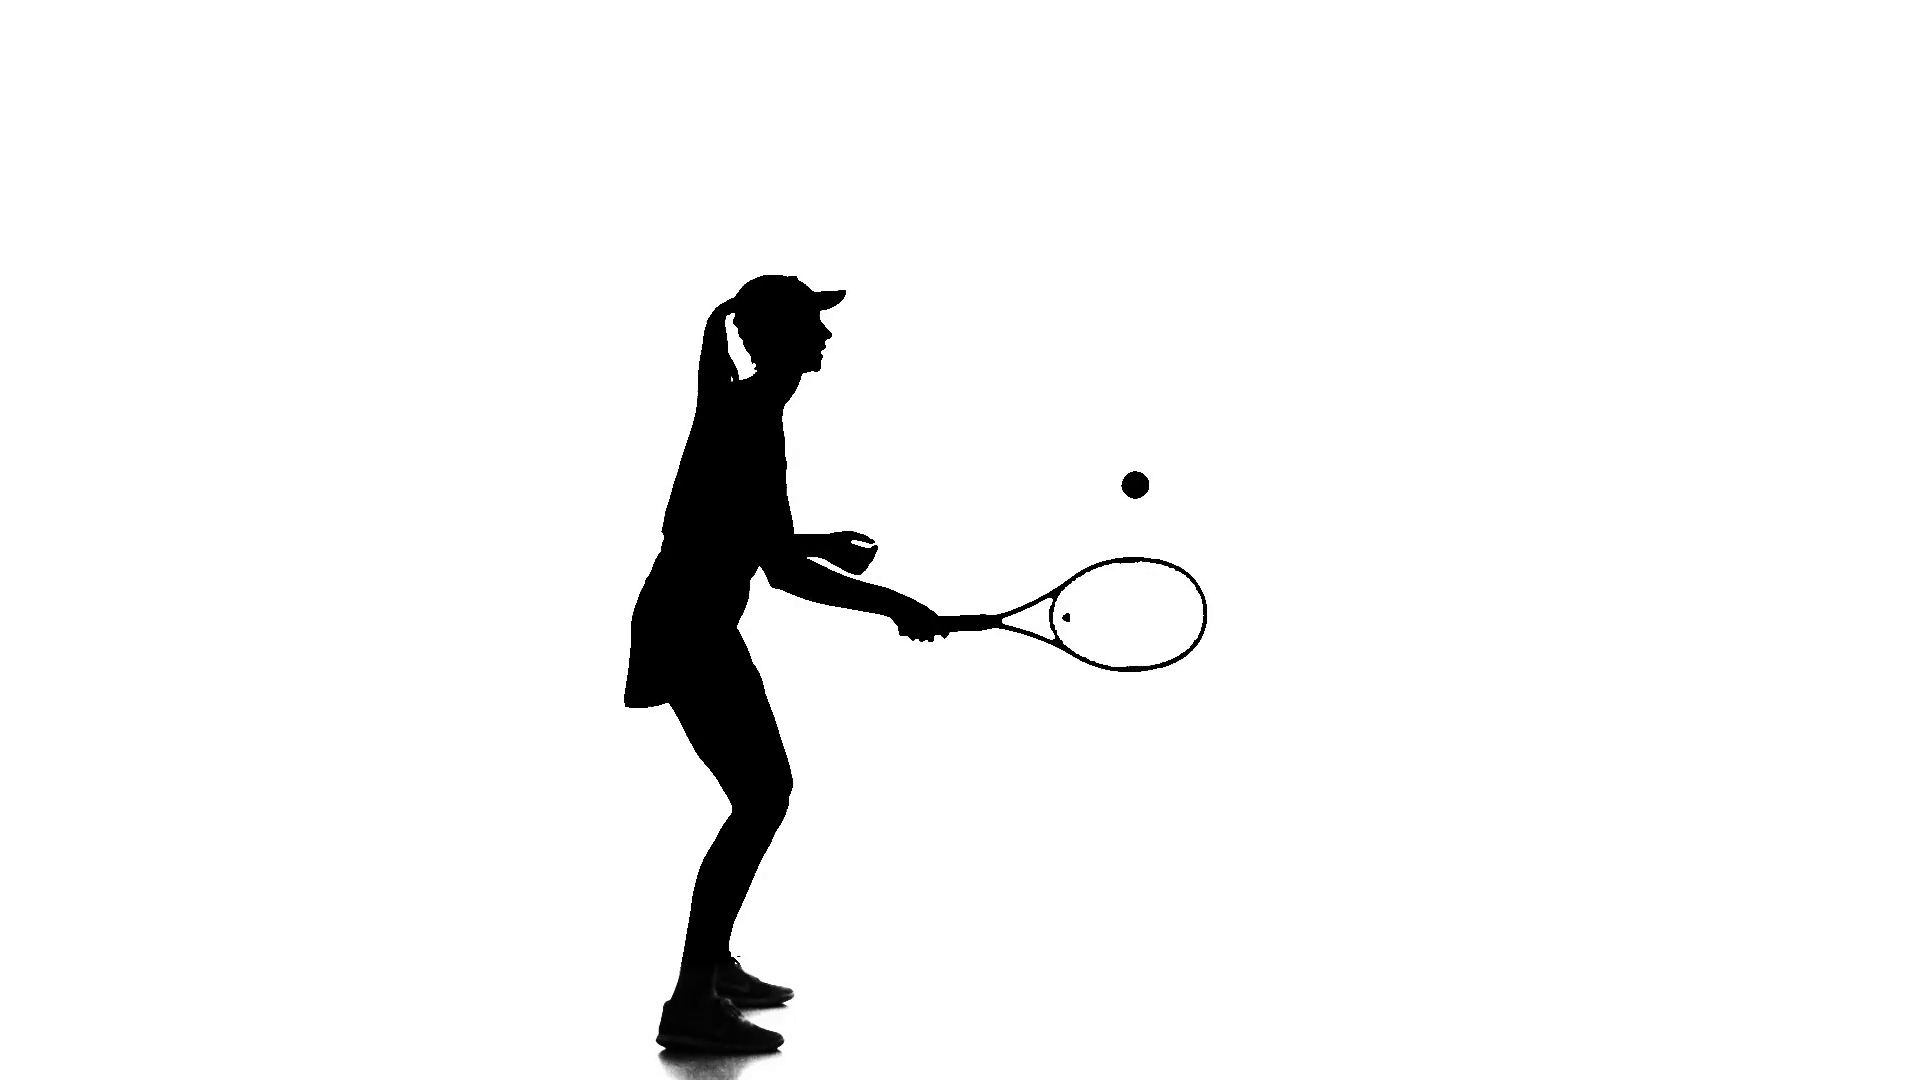 1920x1080 Tennis In The Sports Form Fills Ball Racket Edge. Silhouette. Slow